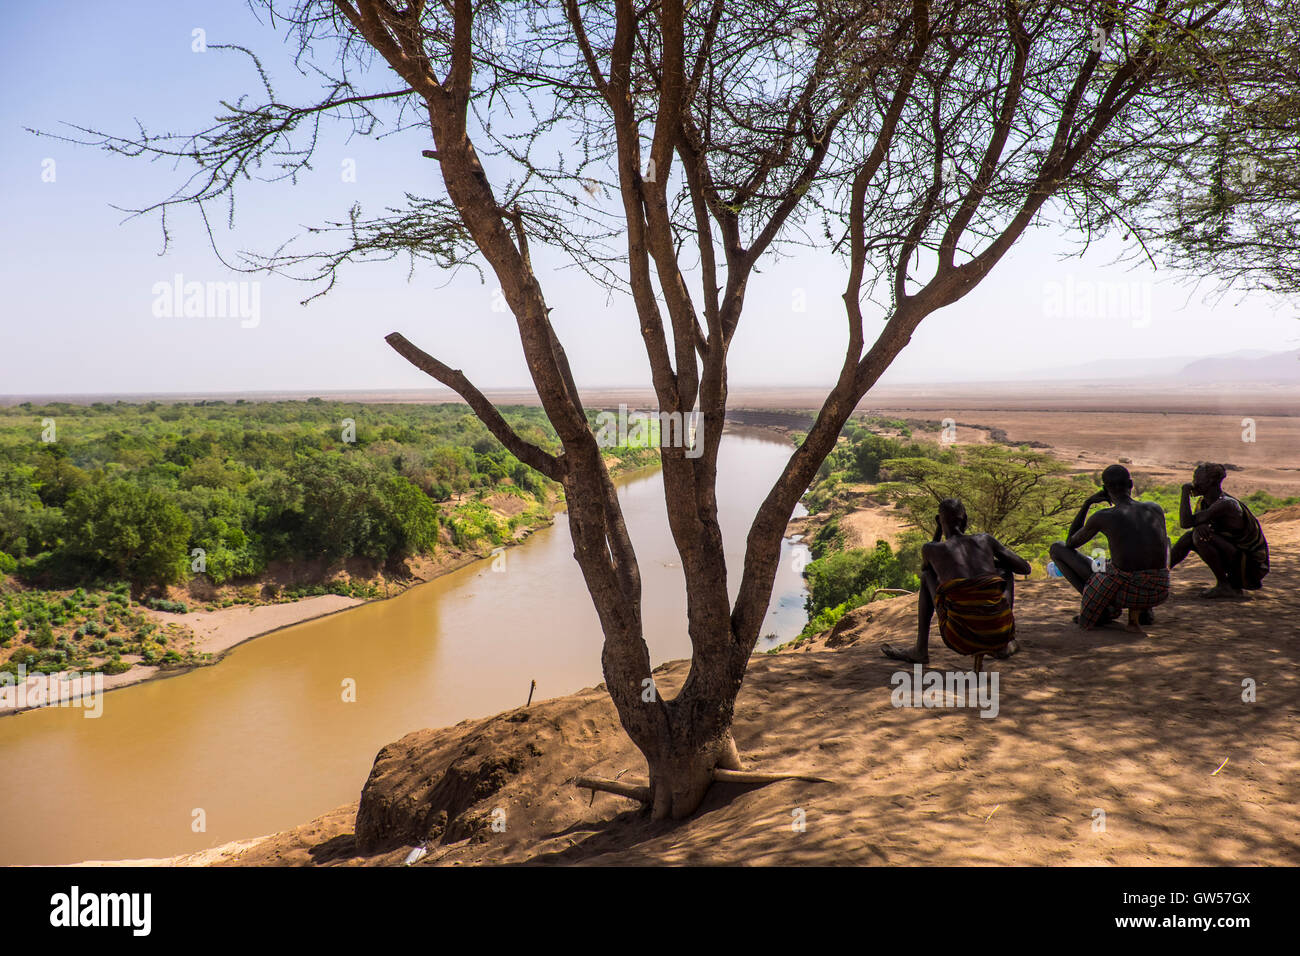 Three men of the Karo tribe sit under a tree in the shade looking down on the Omo River Valley in Ethiopia - Stock Image